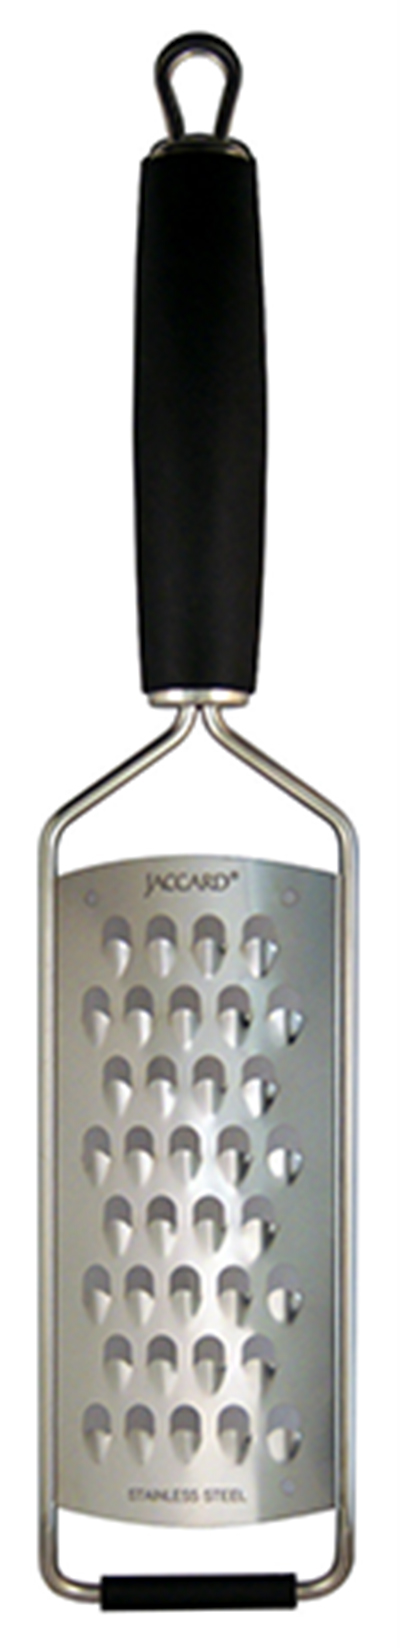 Jaccard 201201GXC Extra Coarse Grater w/ MicroEdge Technology, Stainless Frames & Paddles